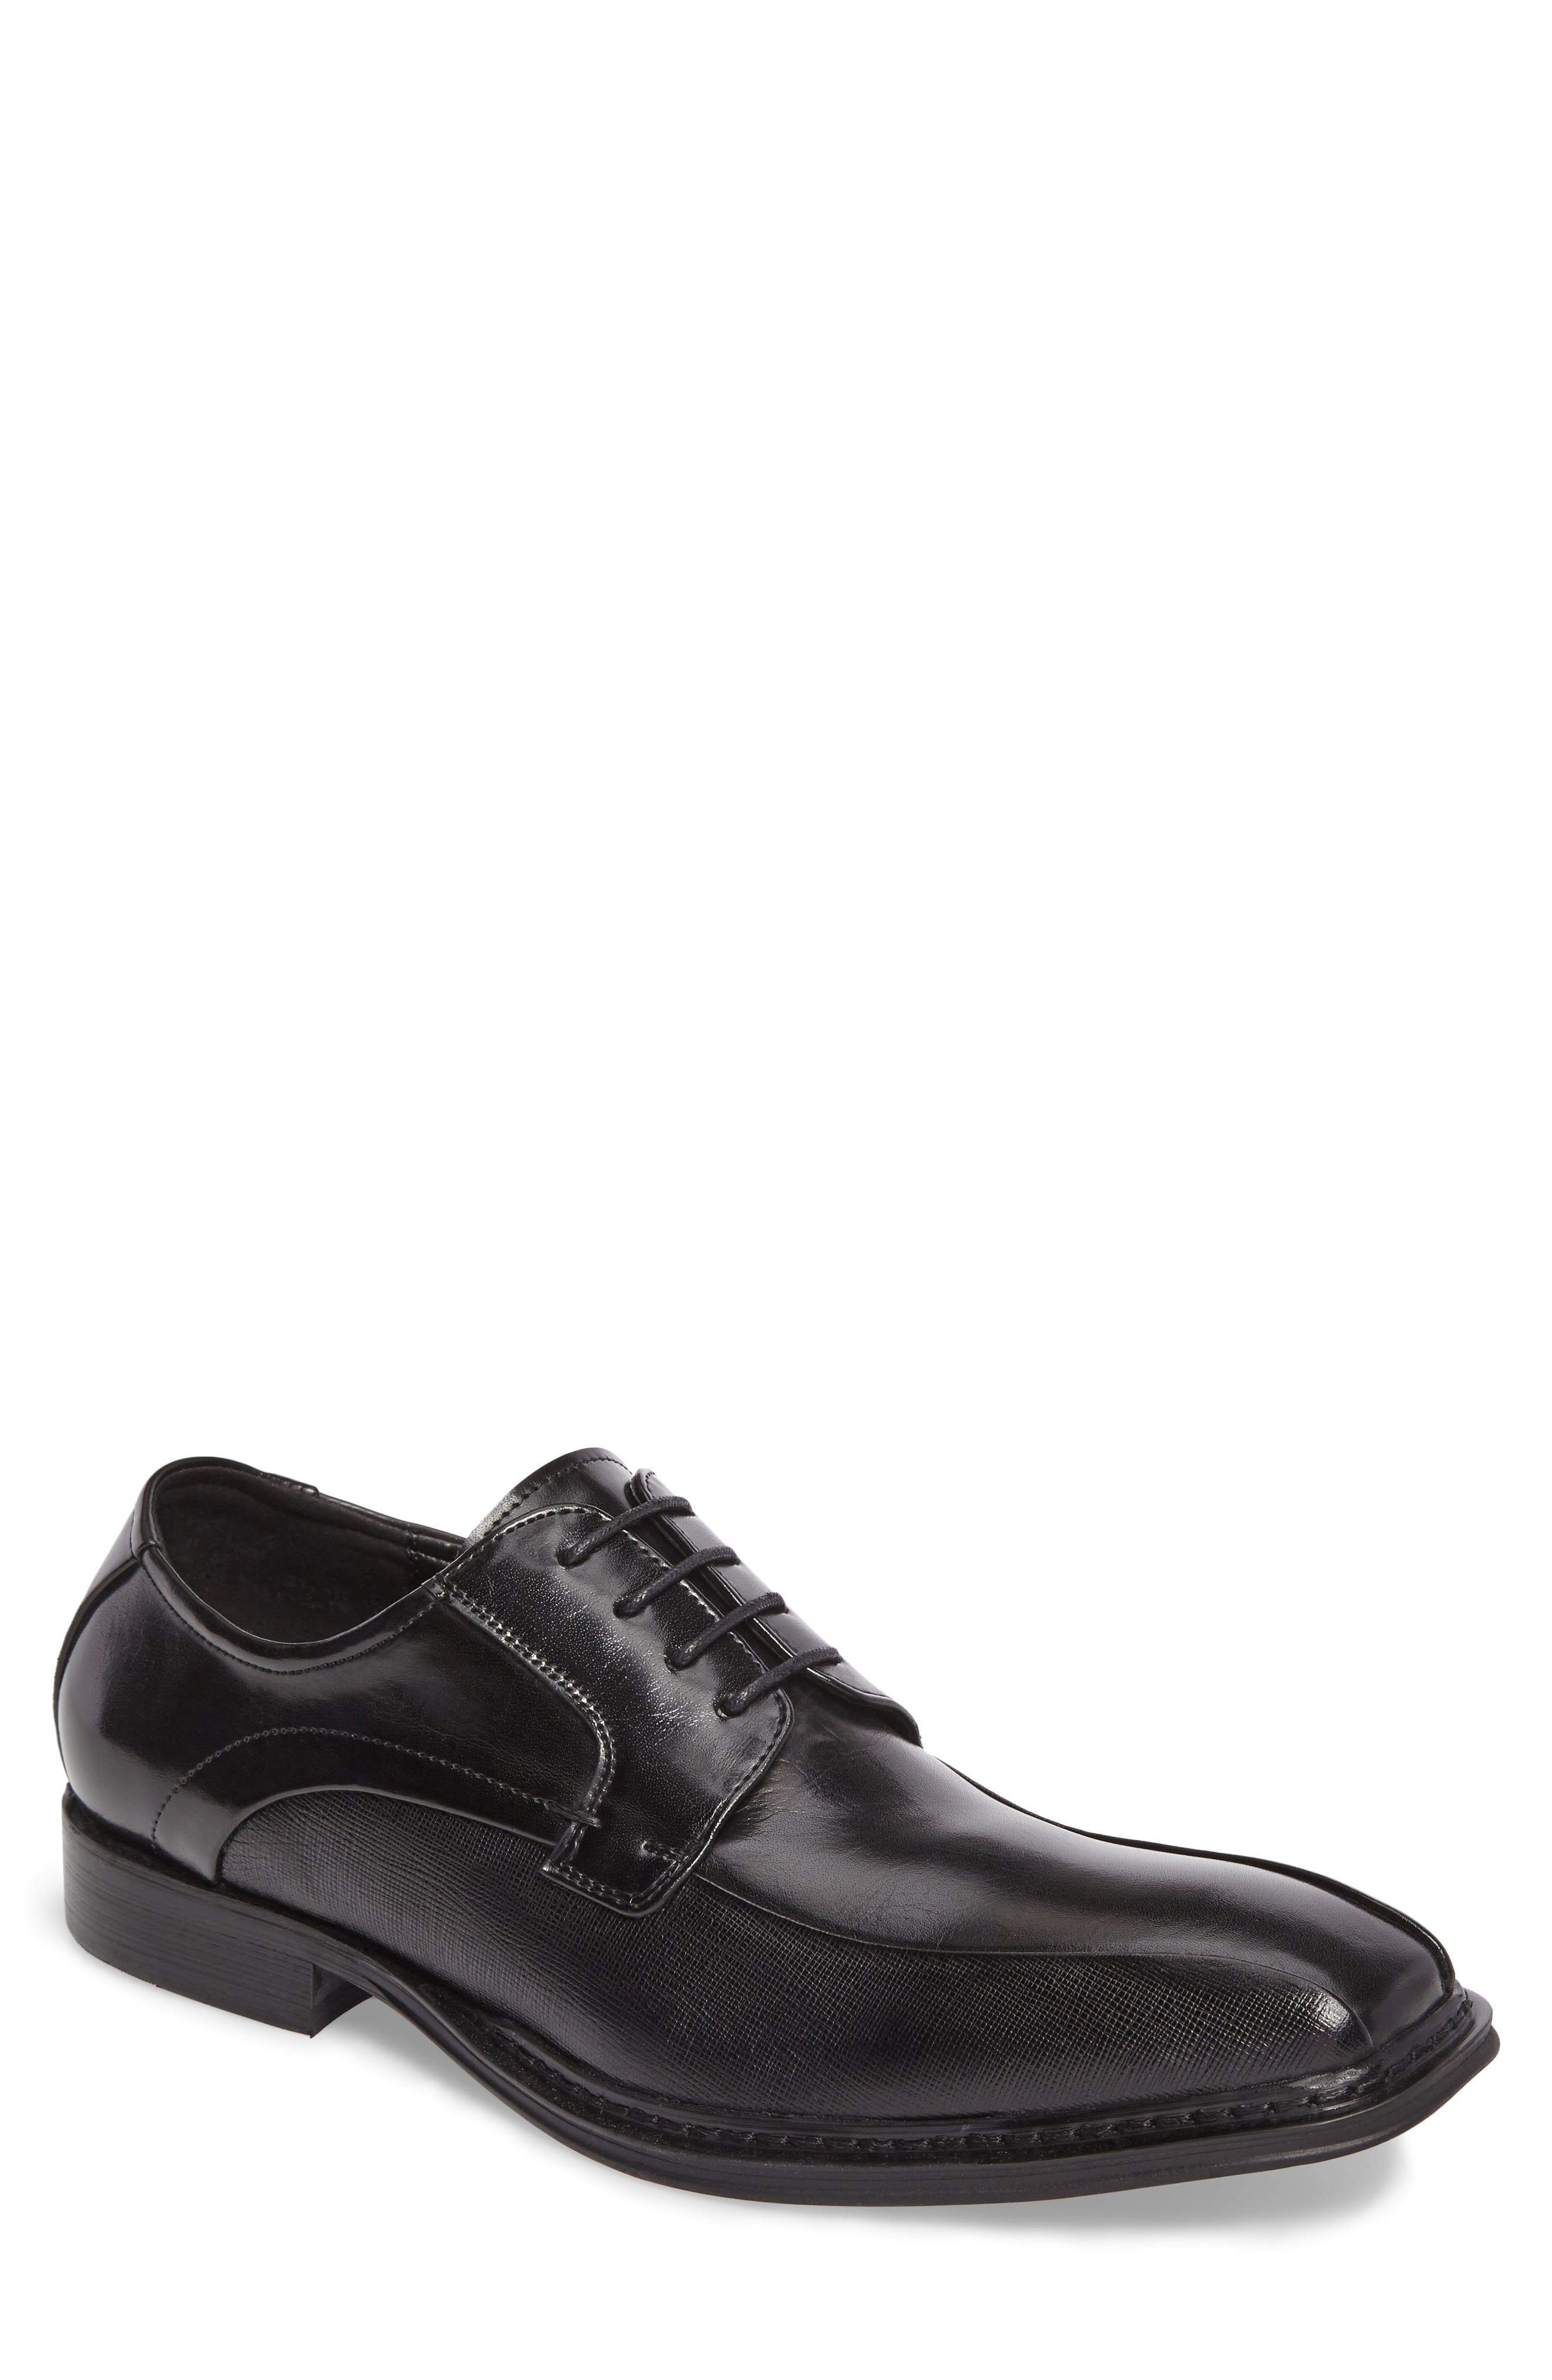 Alternate Image 1 Selected - Reaction Kenneth Cole Bicycle Toe Derby (Men)